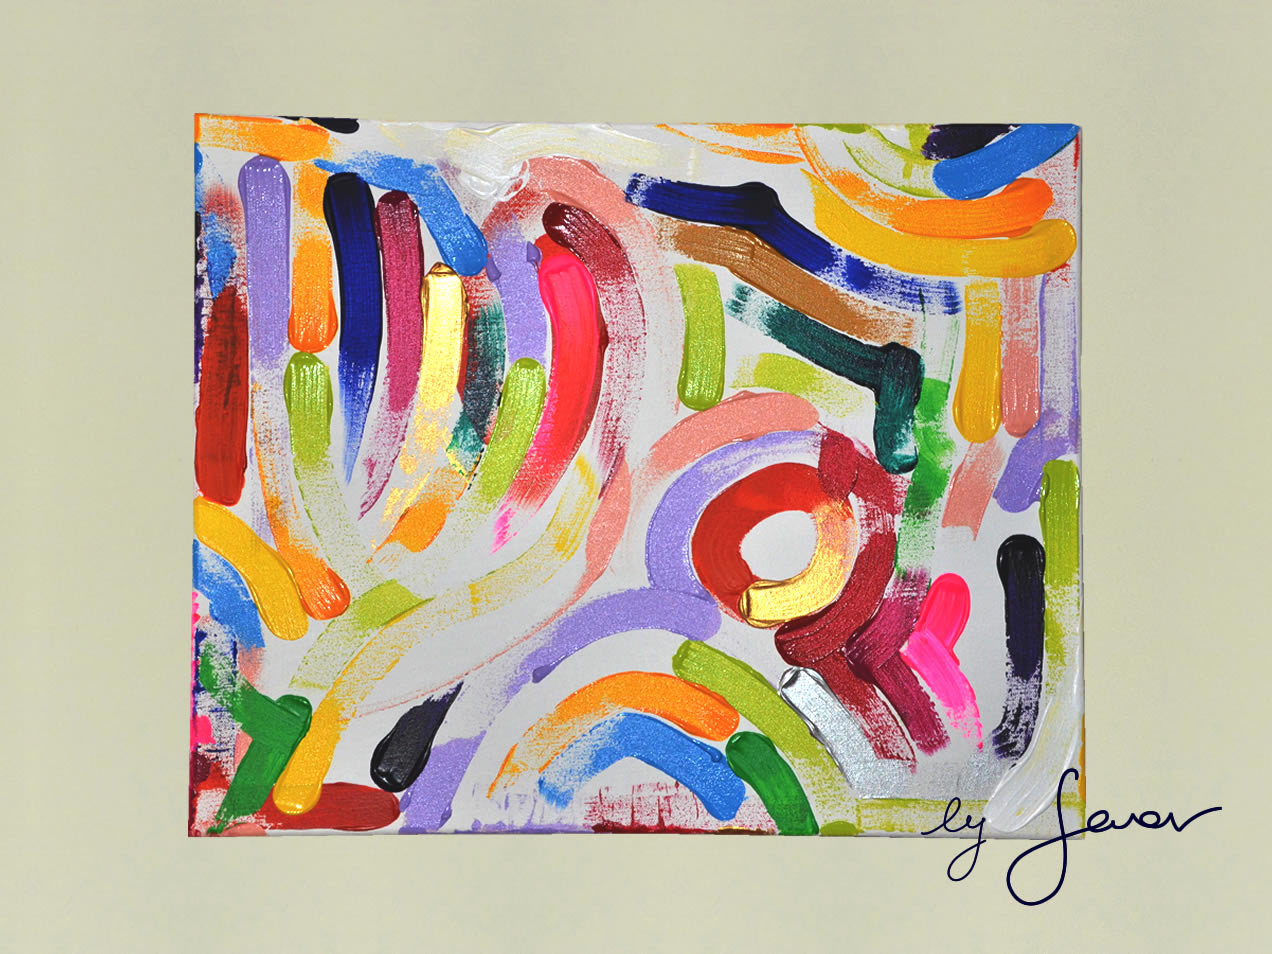 The winds of life, Painting No. 51 by Swav (18 October 2014)